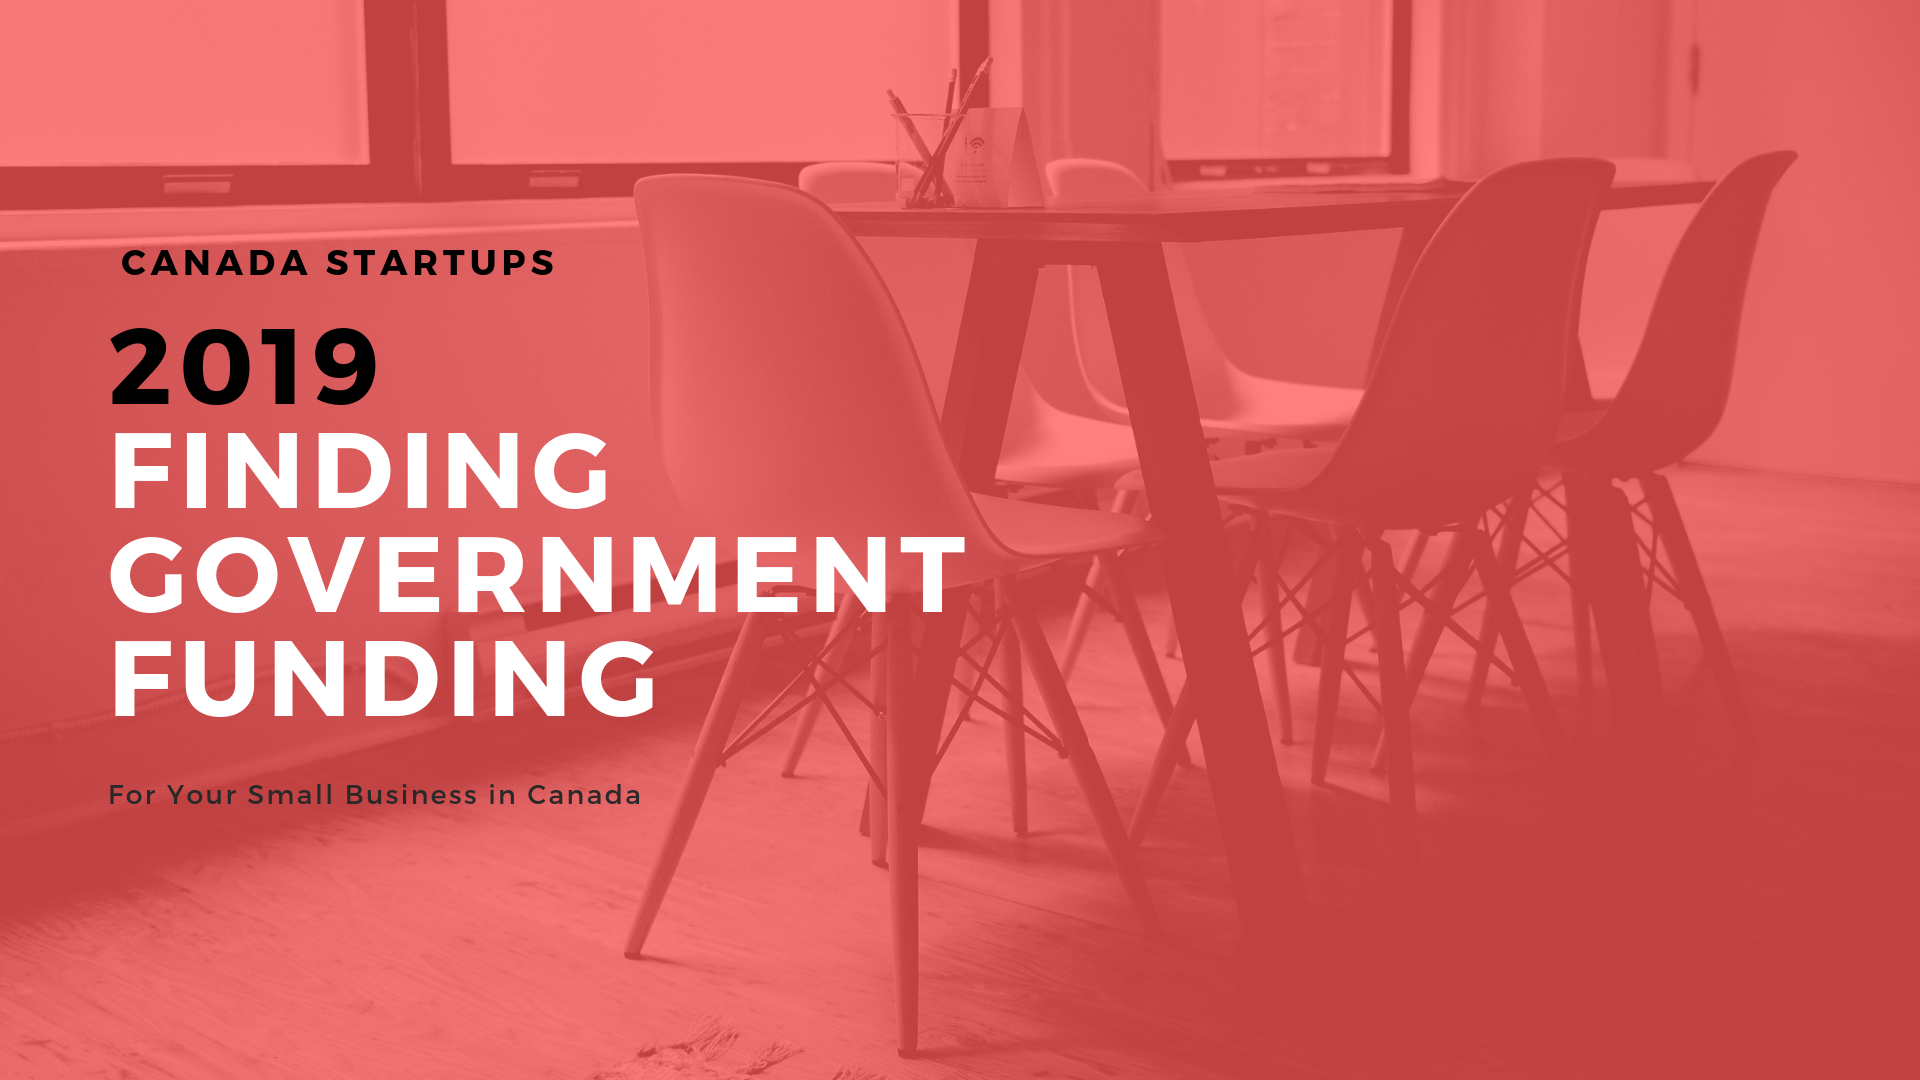 Finding Government Funding in Canada